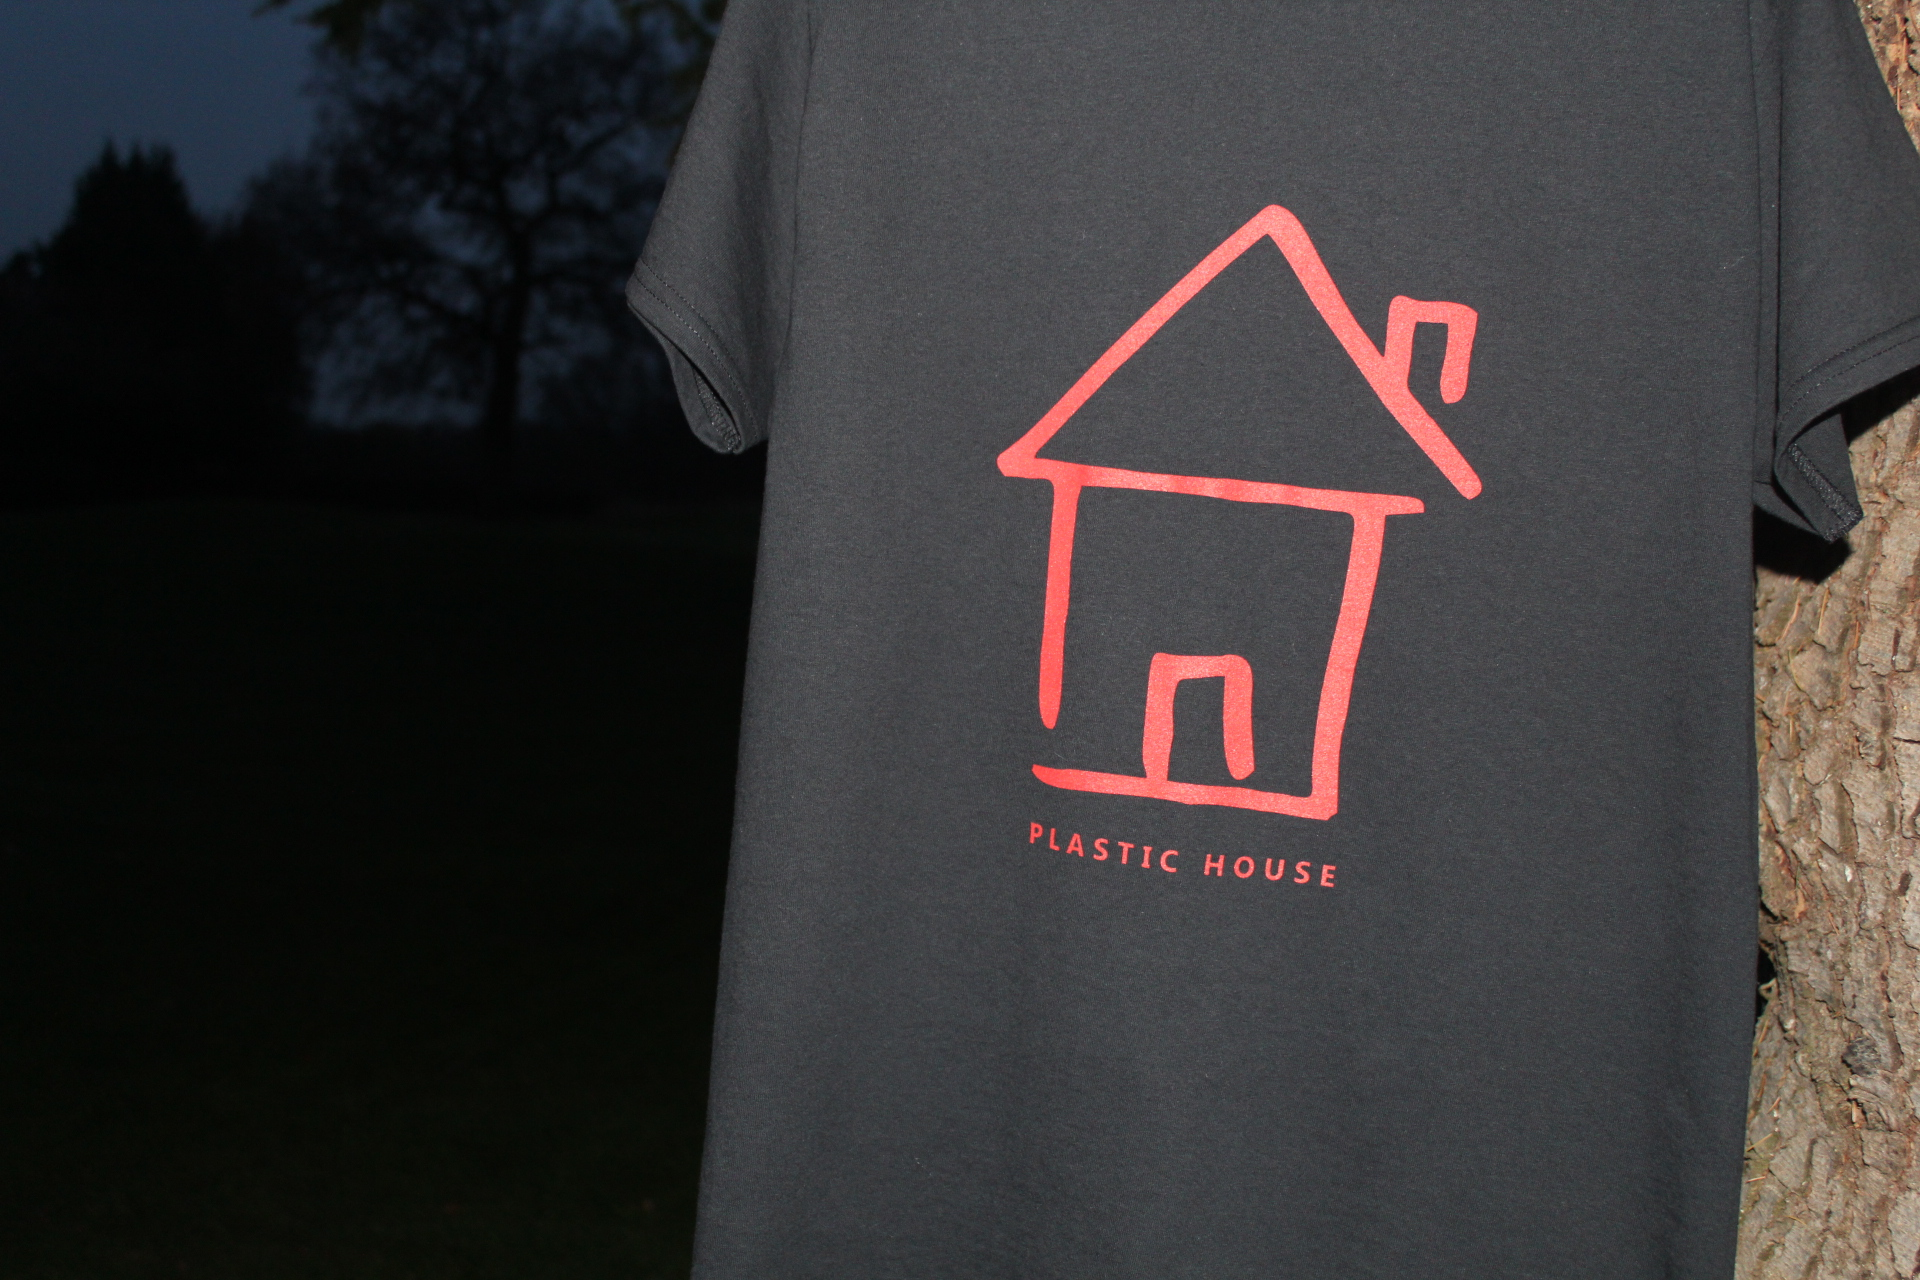 BLK TEE RED LOGO - Plastic House